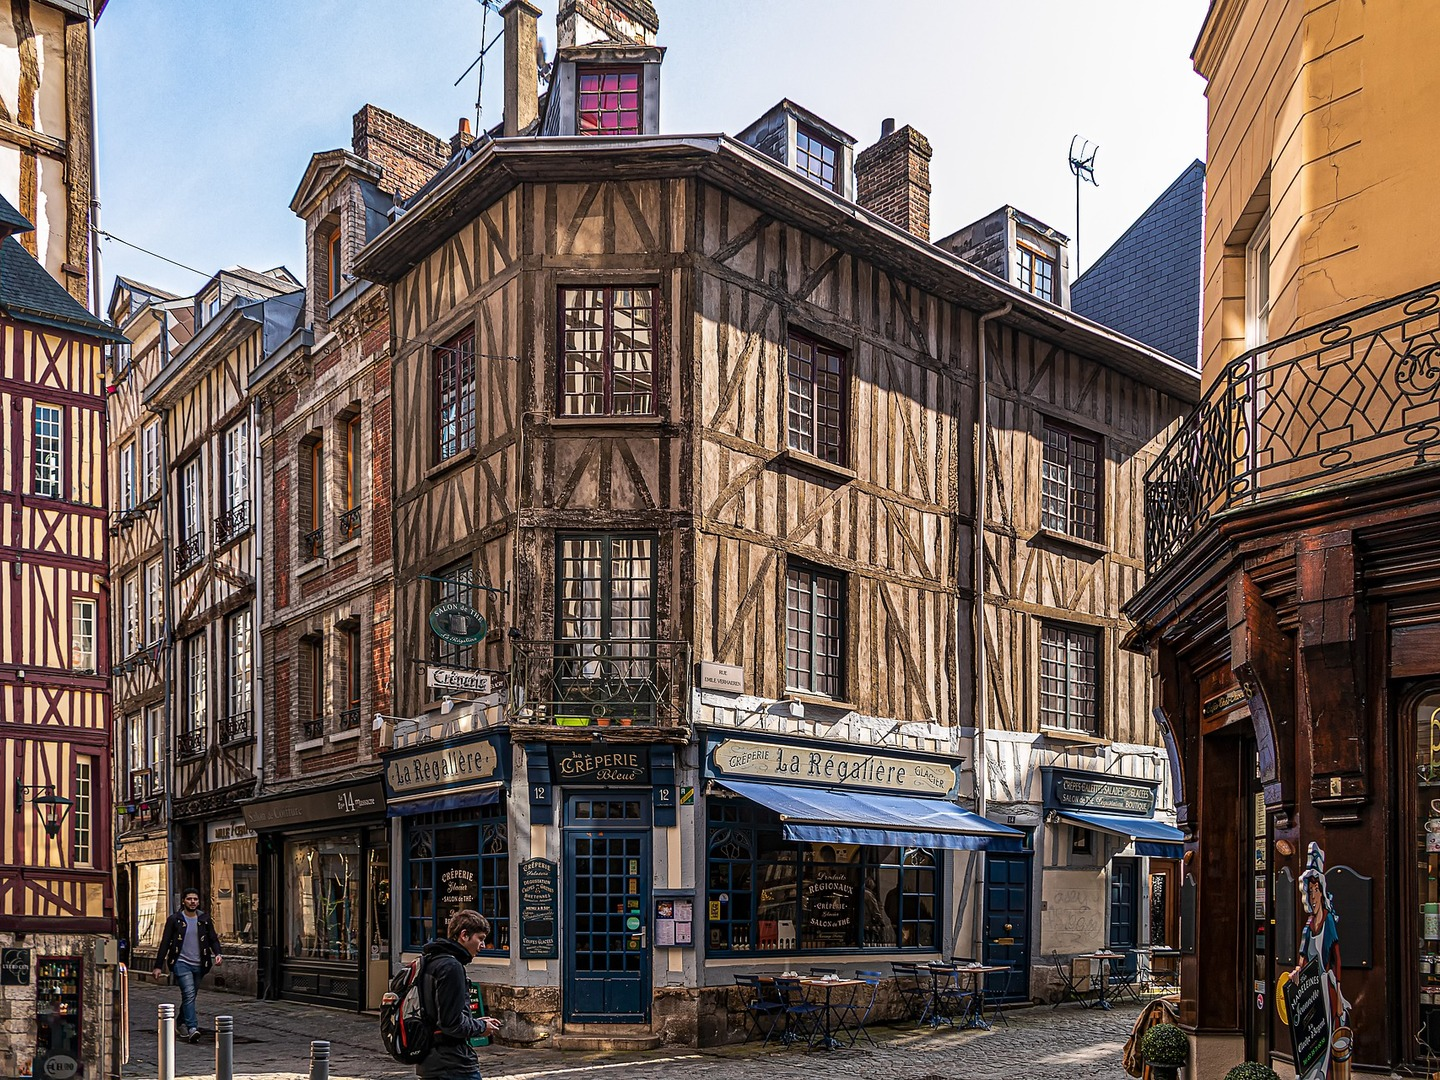 The city of Rouen, France